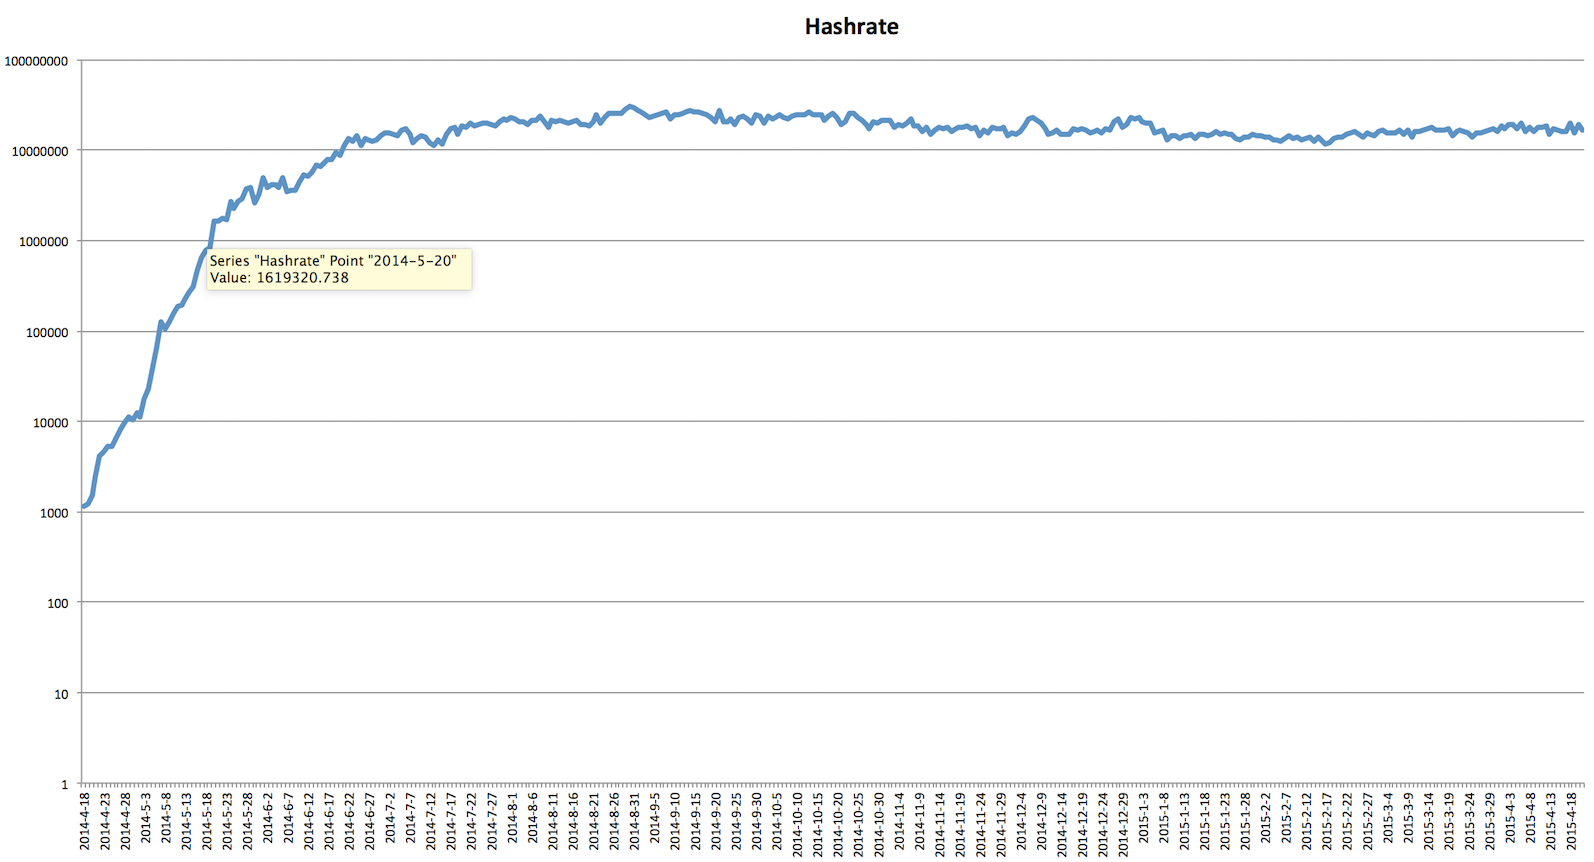 All-time hashrate, showing the initial arms race